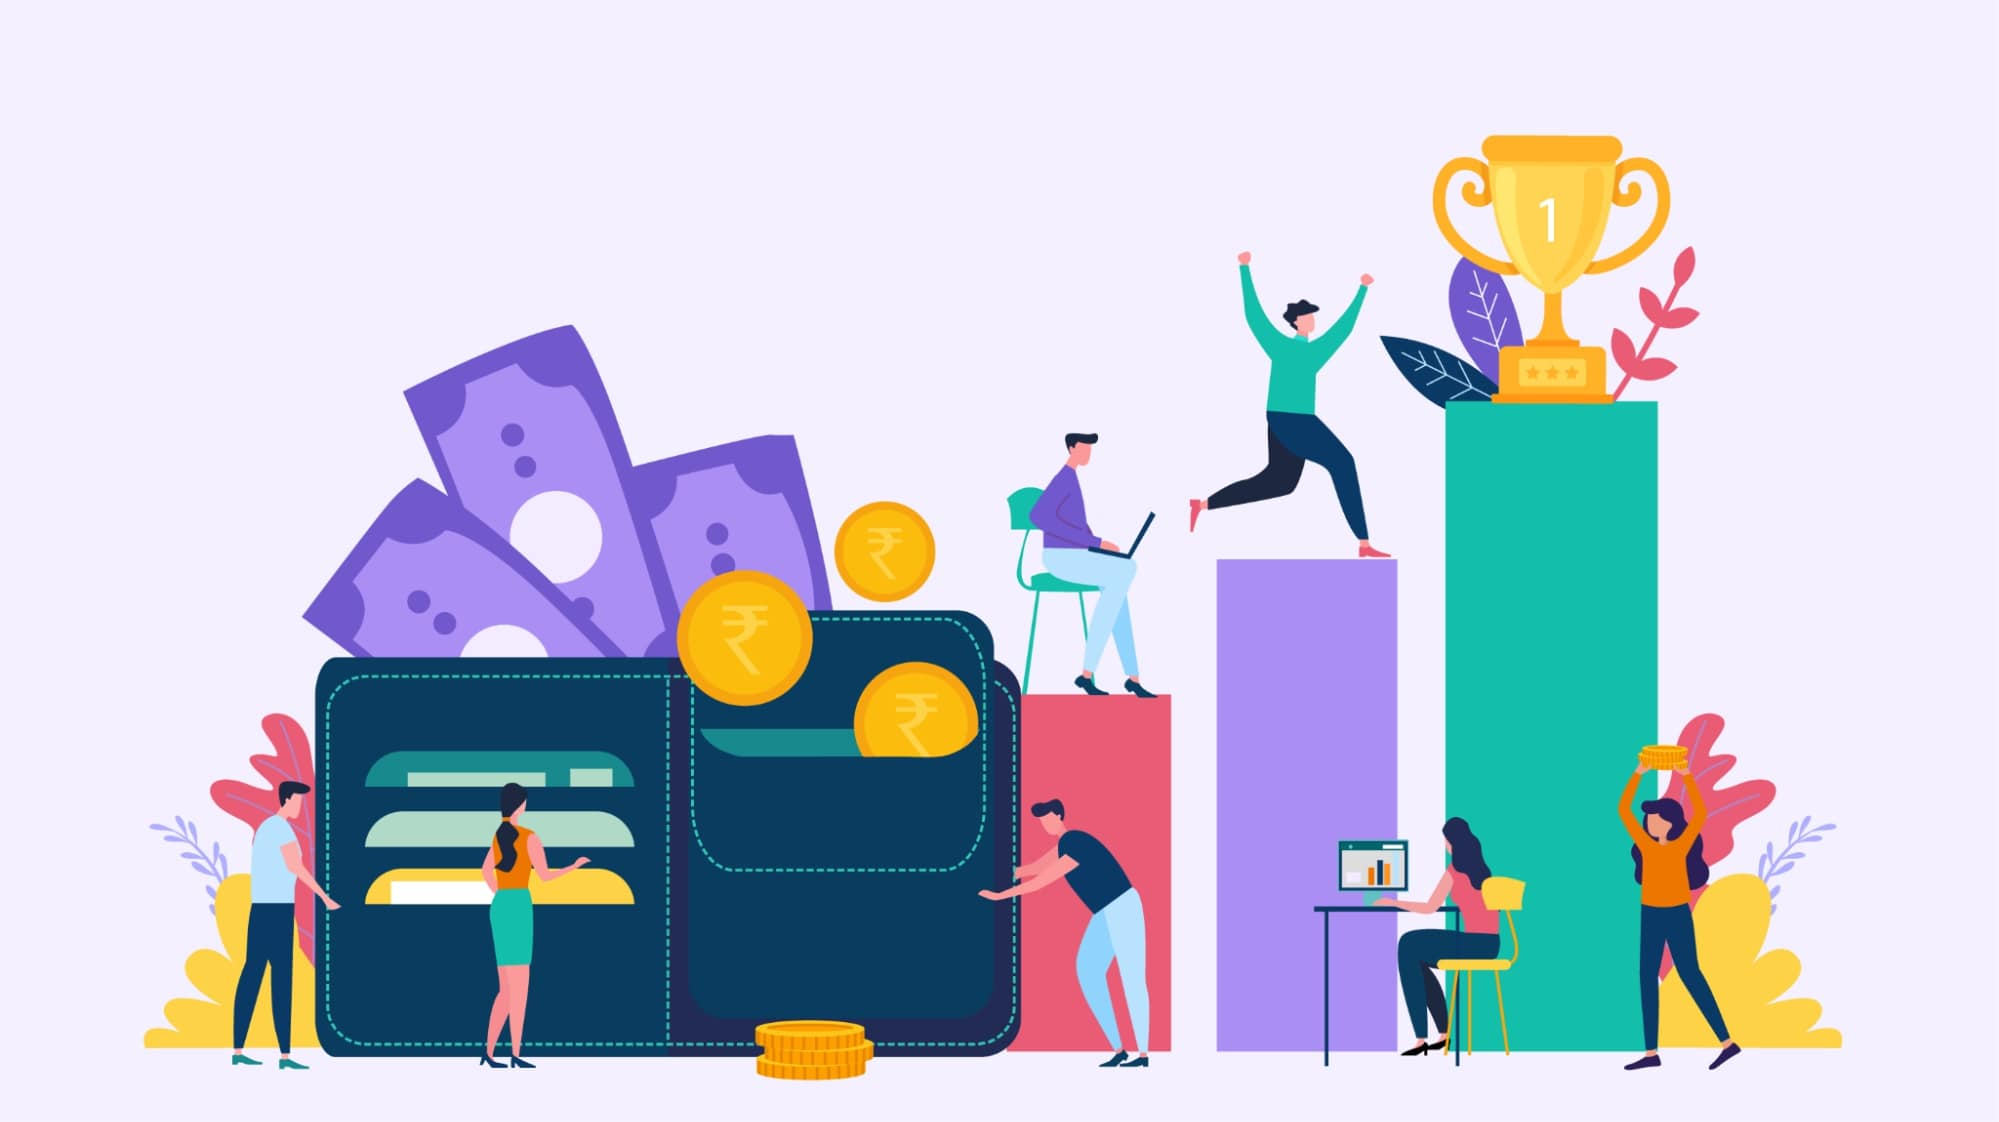 Keep your partners motivated with rewards